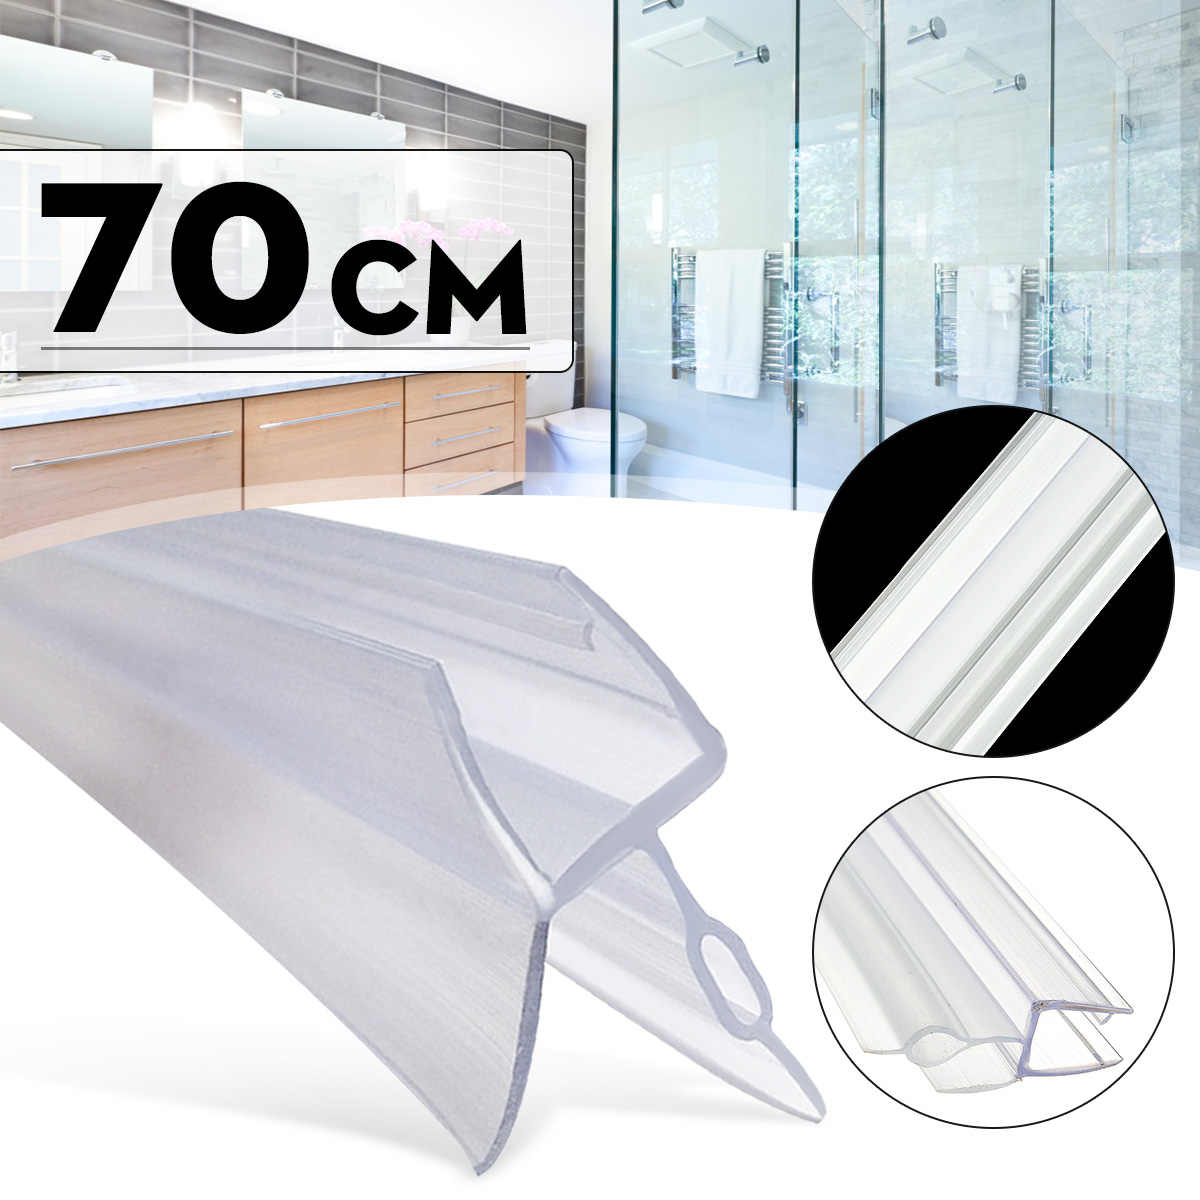 4-6mm Shower Screen Water Seal Strip Bar Curved Flat Glass Bath Door to 17mm Gaps